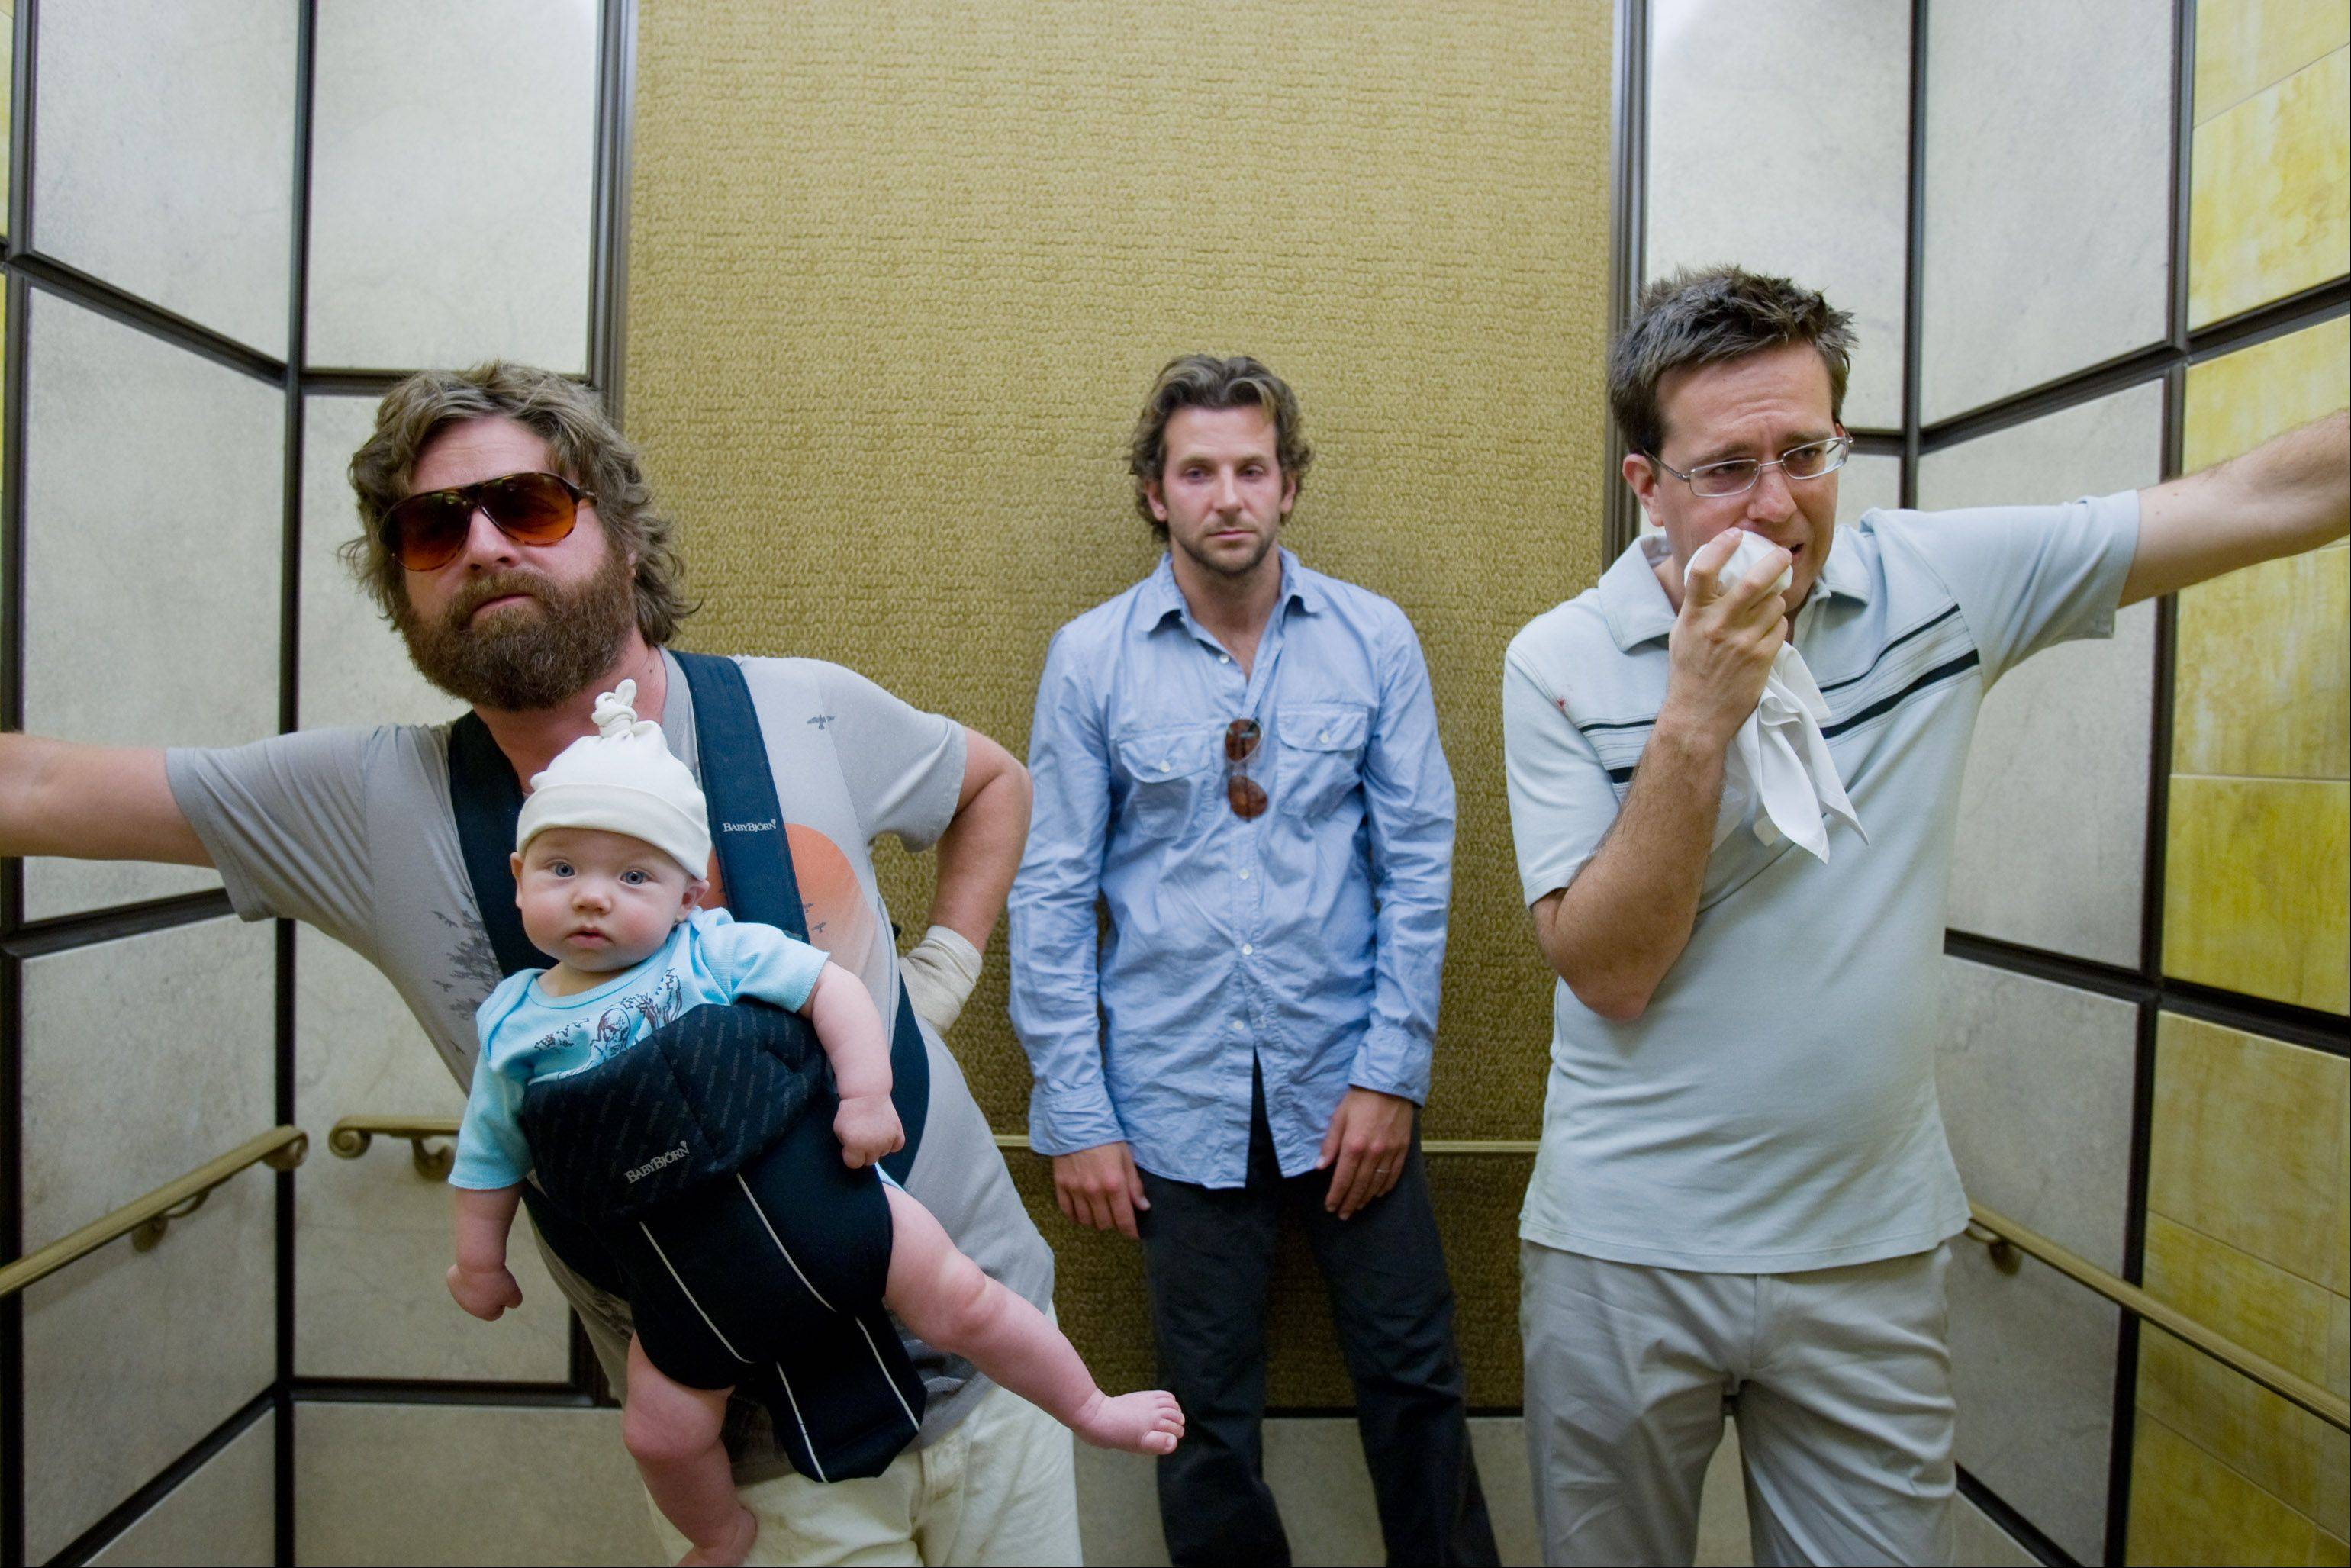 �The Hangover� is one of 20 comedies featured in a new DVD collection.